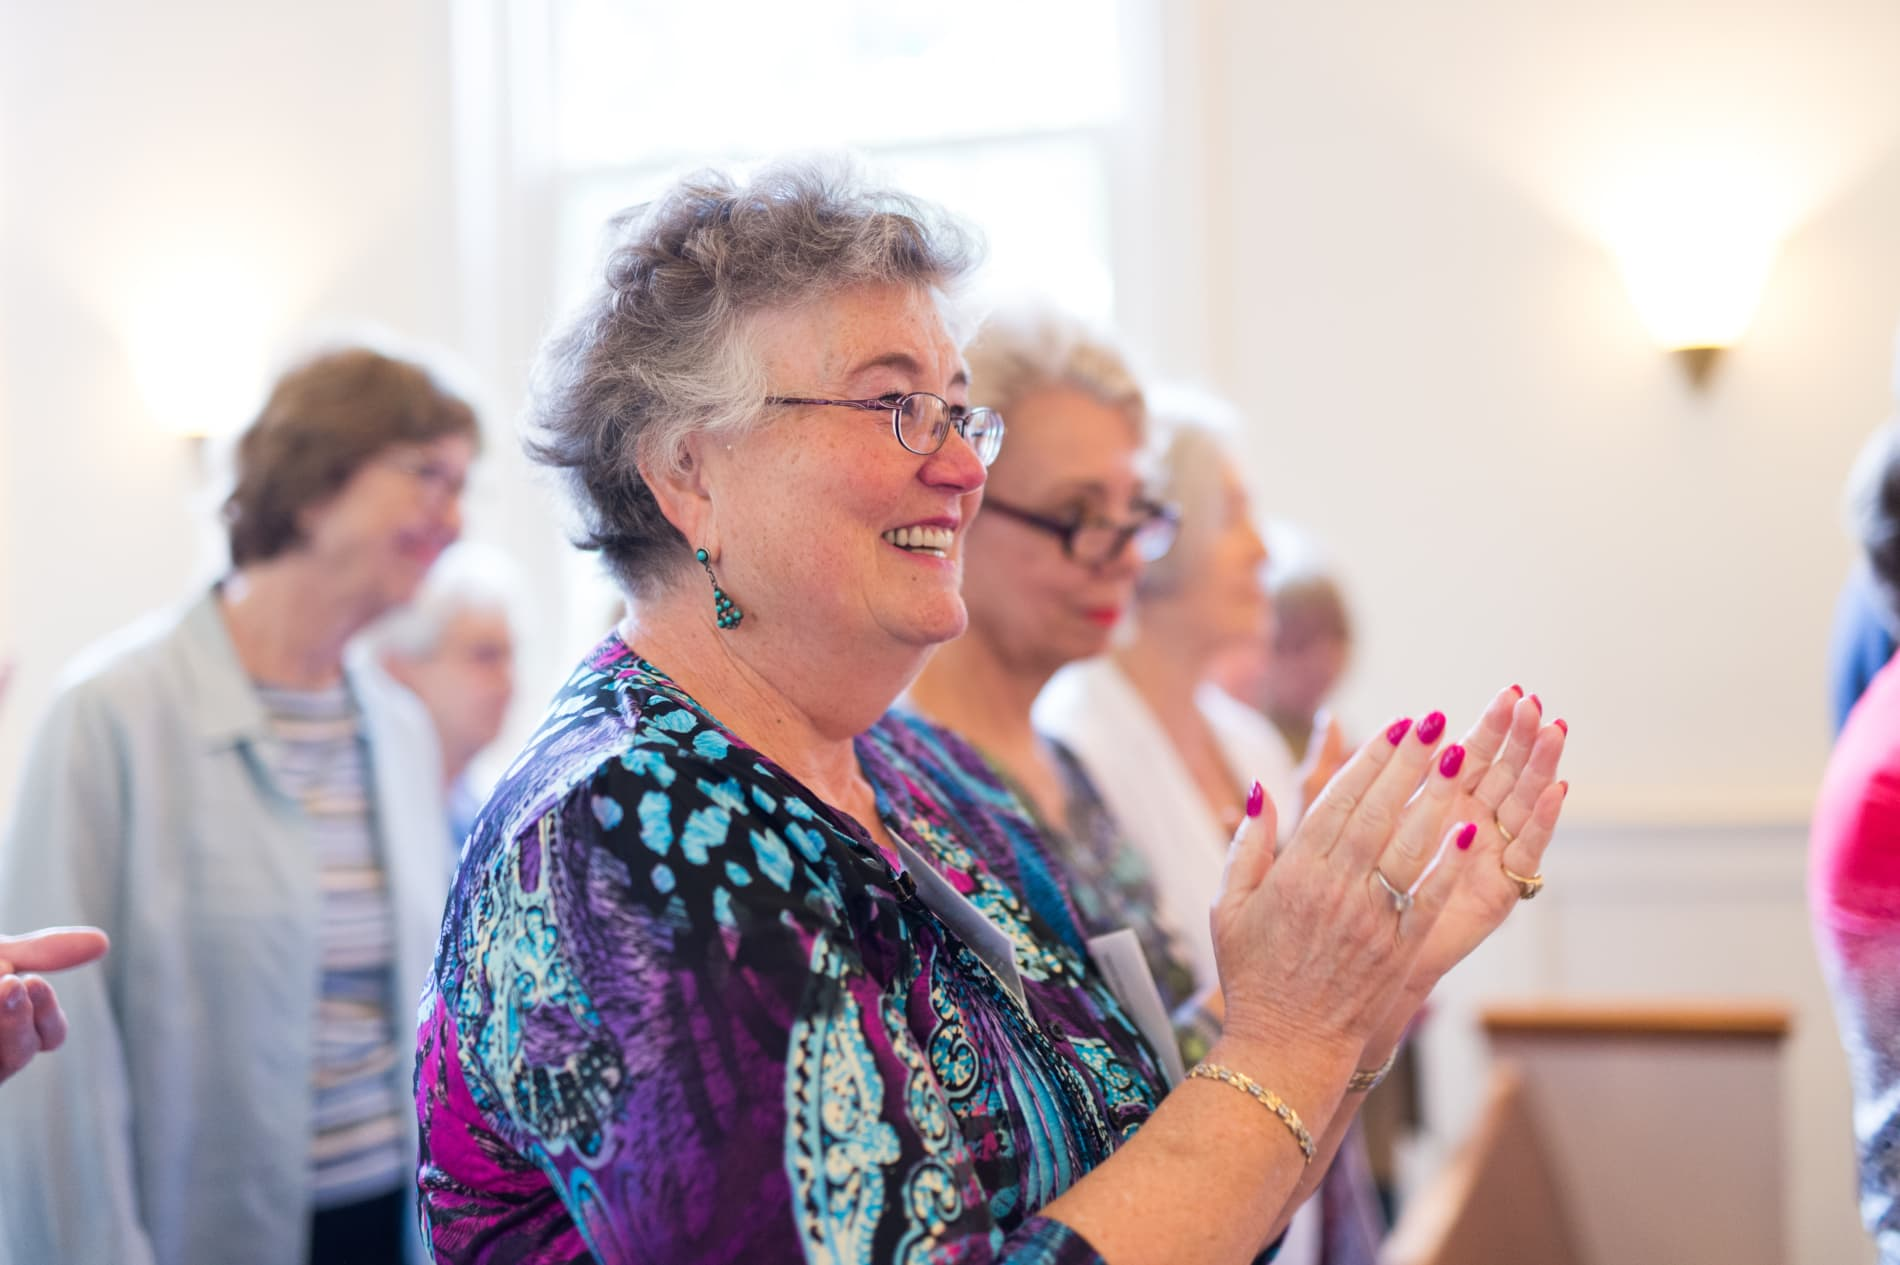 A woman claps during a hymn